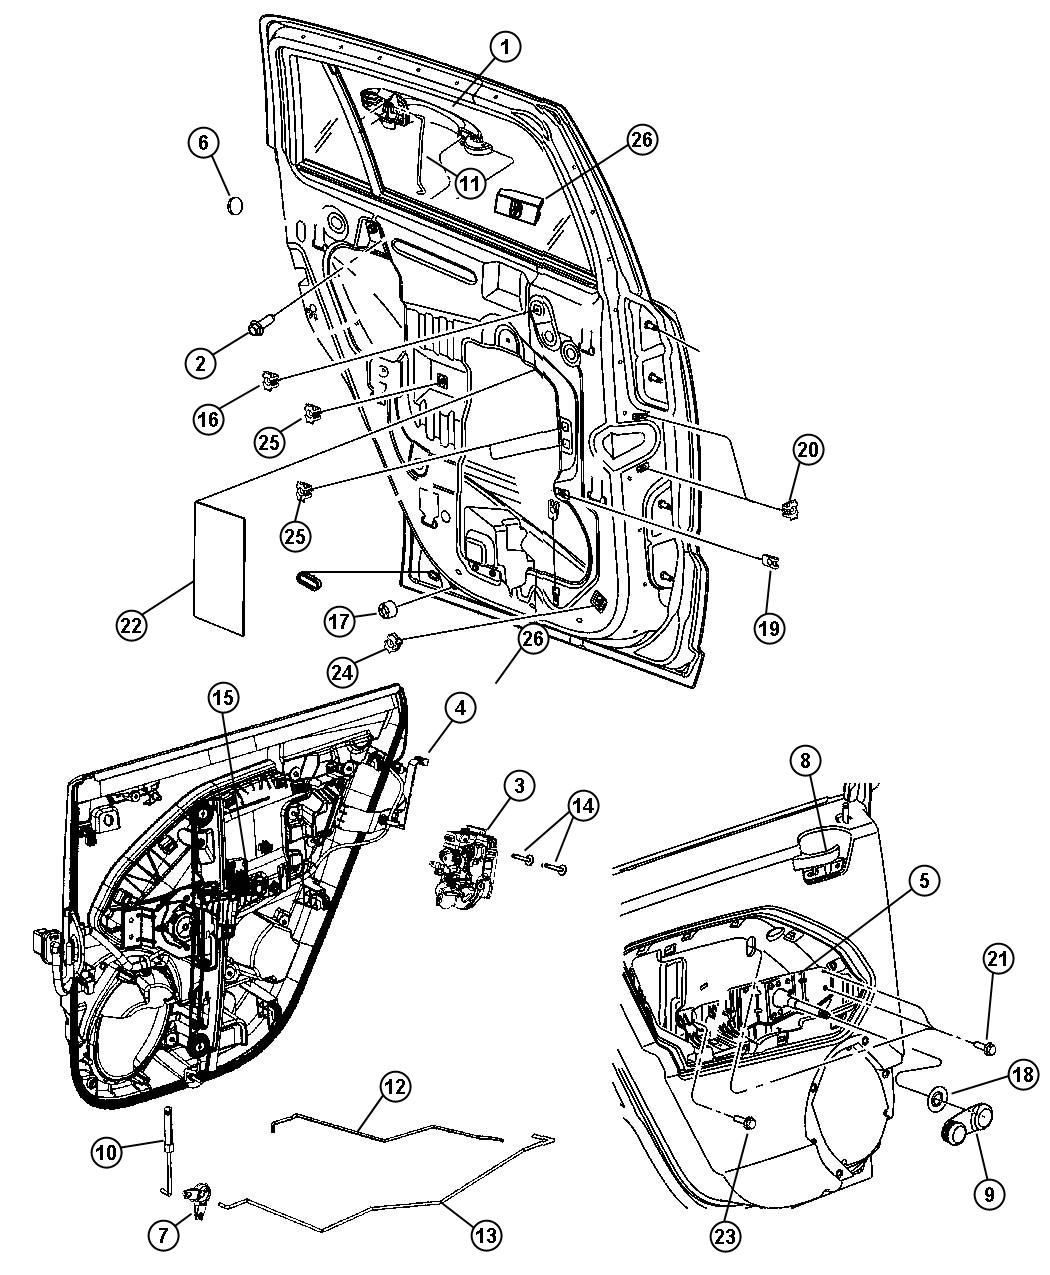 service manual  2010 jeep patriot driver door latch repair